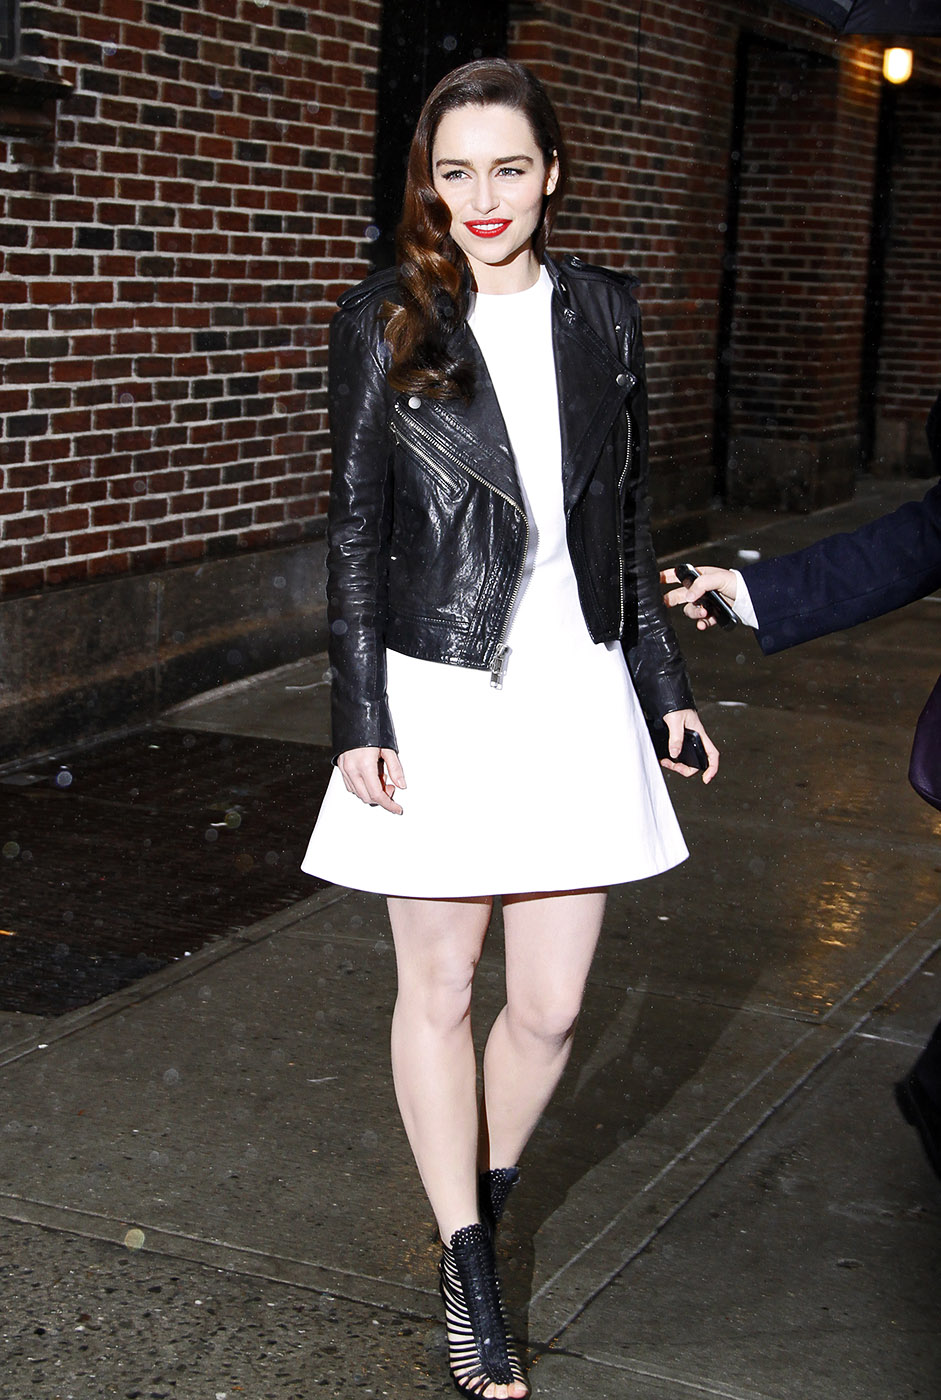 Top 9 At 9 39 Game Of Thrones 39 Star Emilia Clarke 39 S Effortless Style Aol News